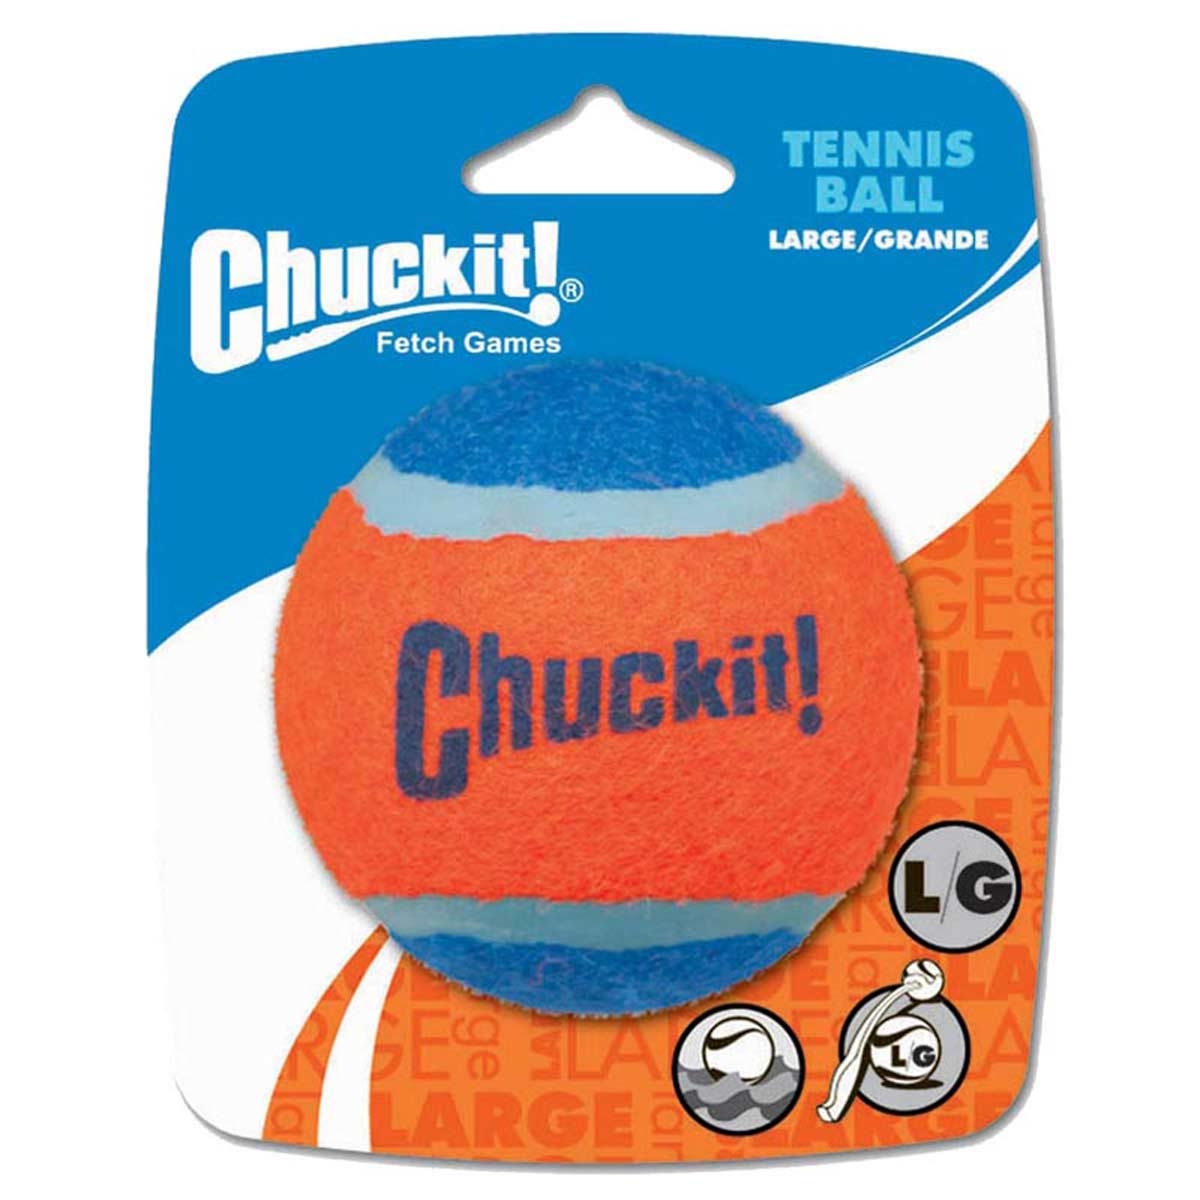 Chuckit! Tennis Ball Large 1 Pack